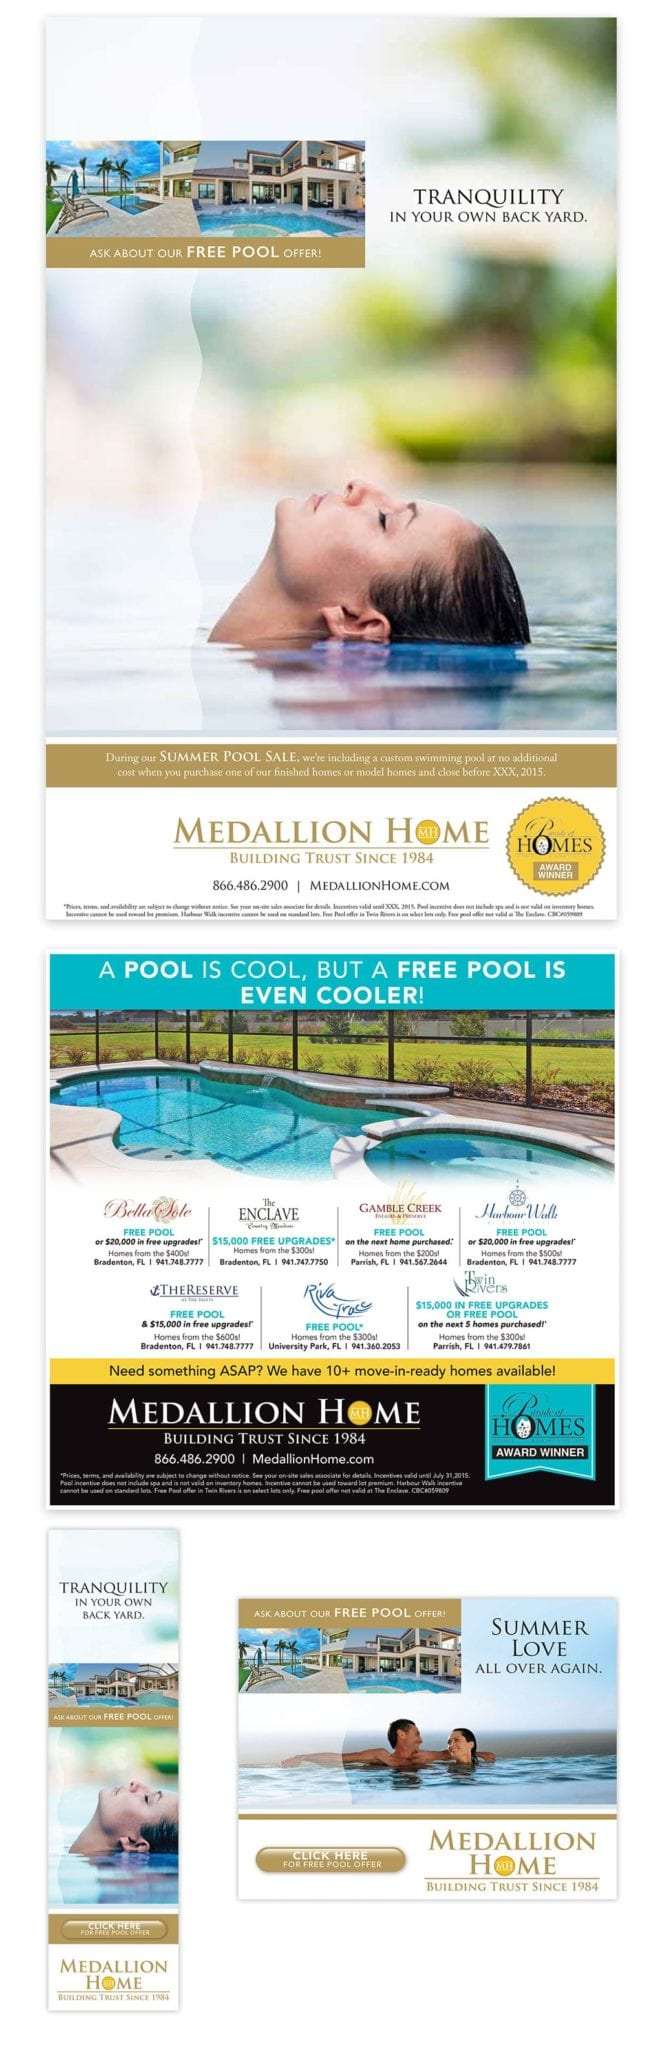 medallion-h_art_mashup-free-pool2